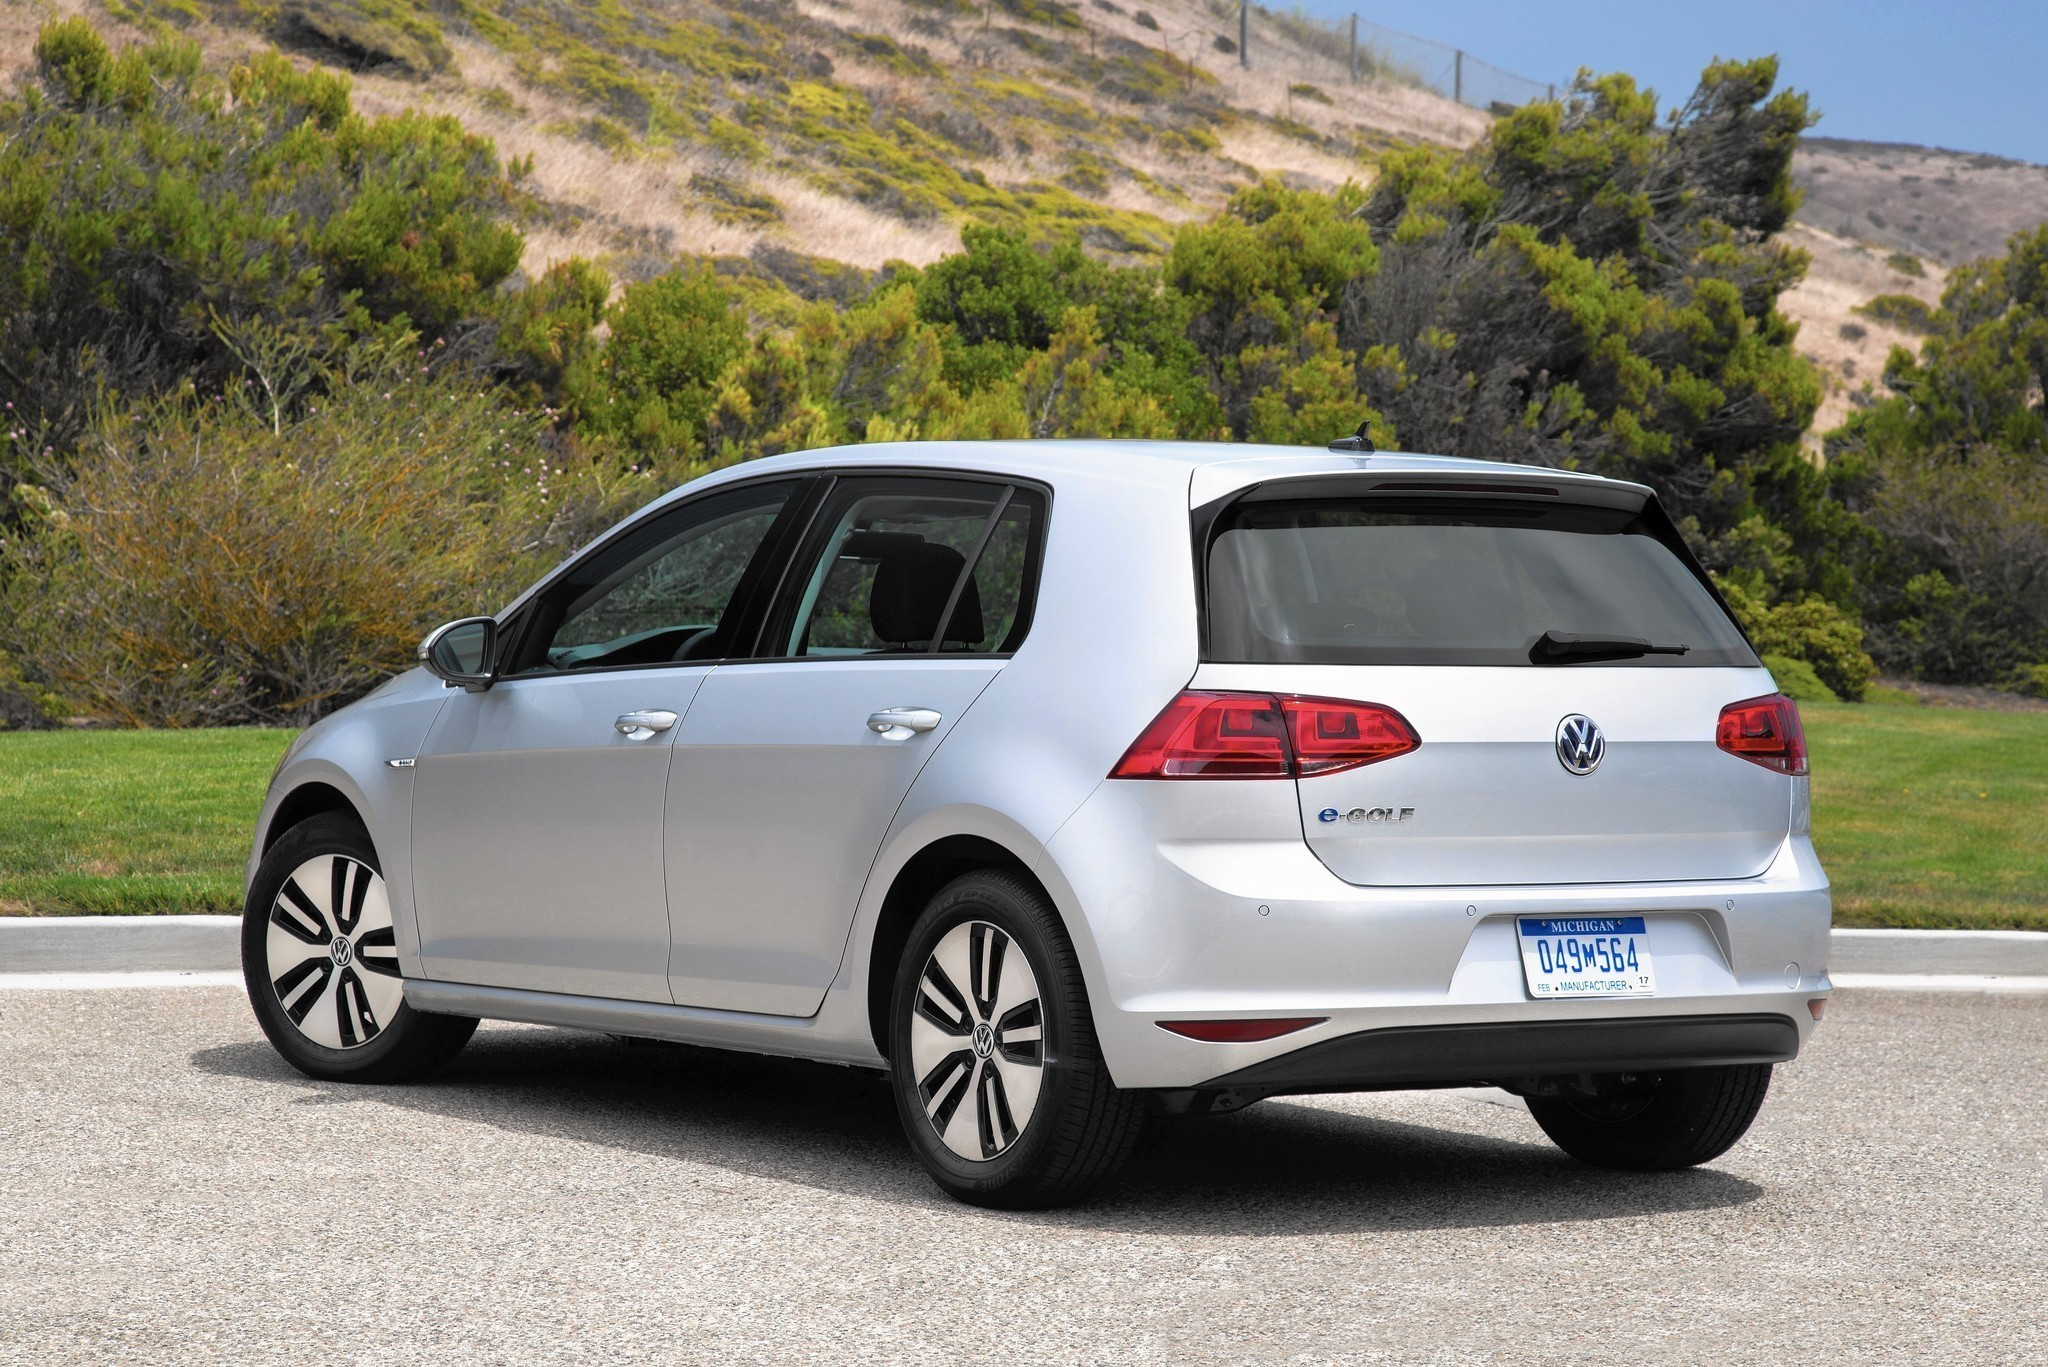 car review vw 39 s all electric e golf is as zippy and roomy as gas version la times. Black Bedroom Furniture Sets. Home Design Ideas